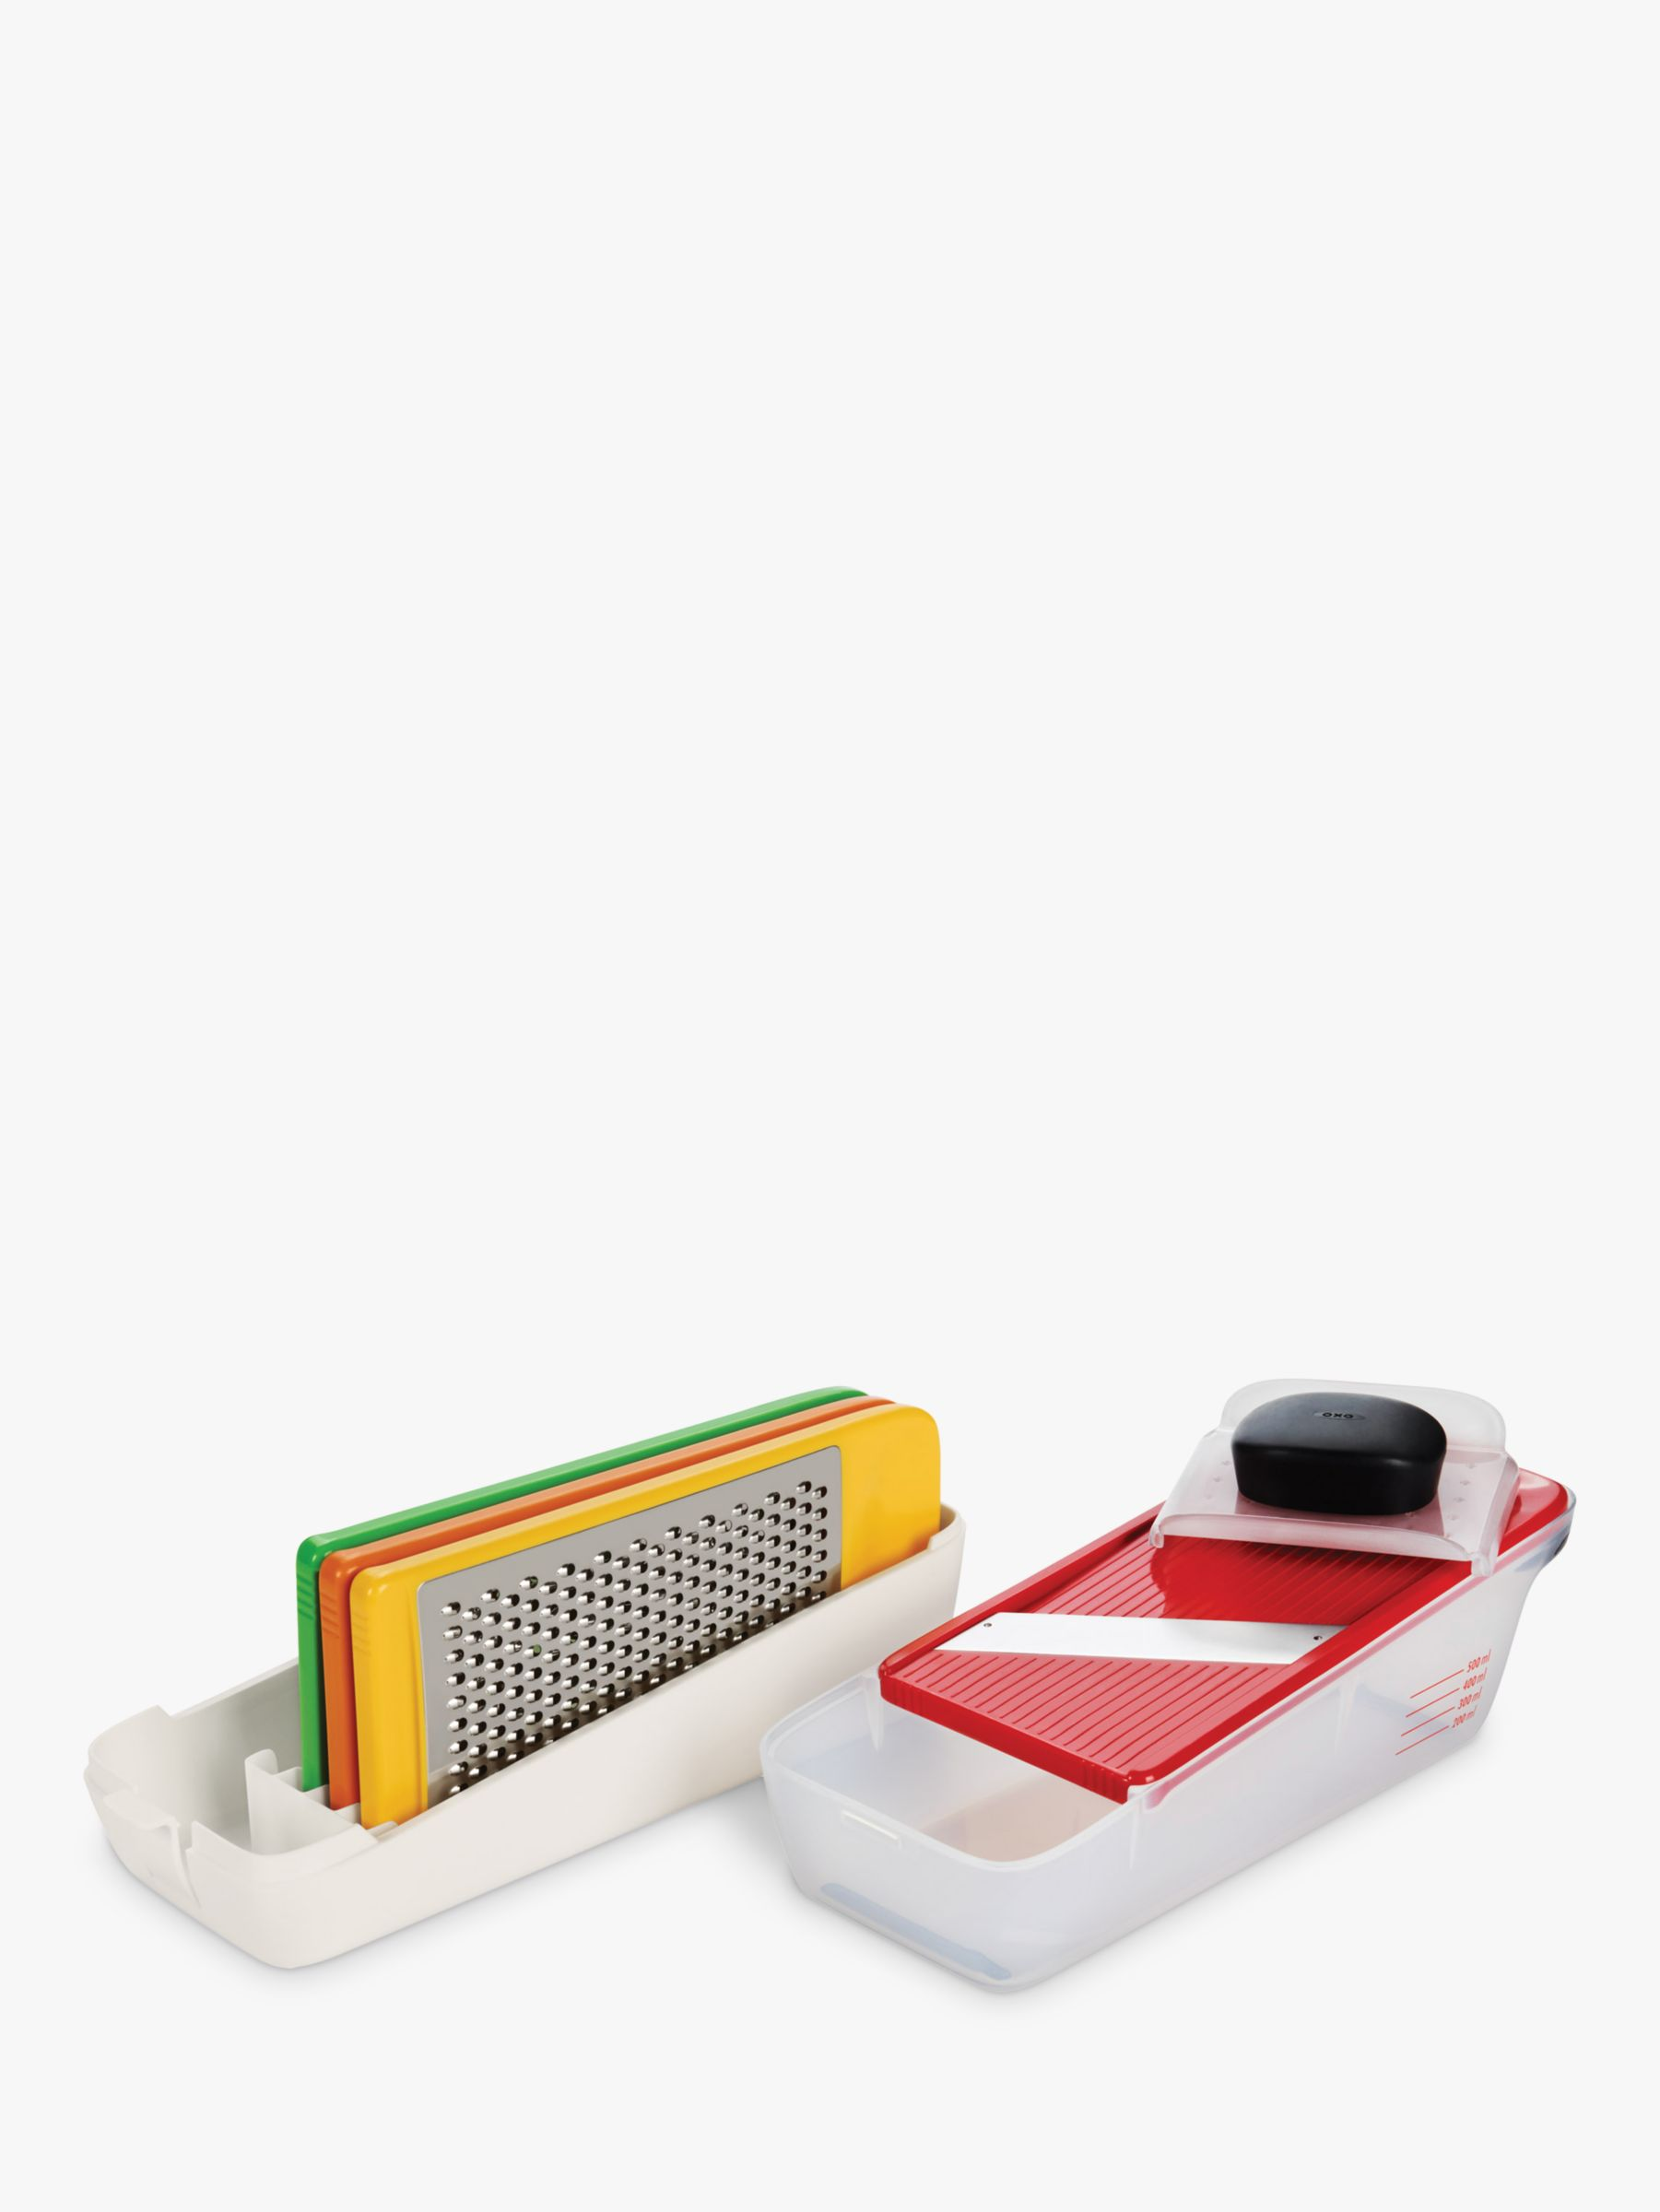 Oxo OXO Good Grips Grate and Slice Set